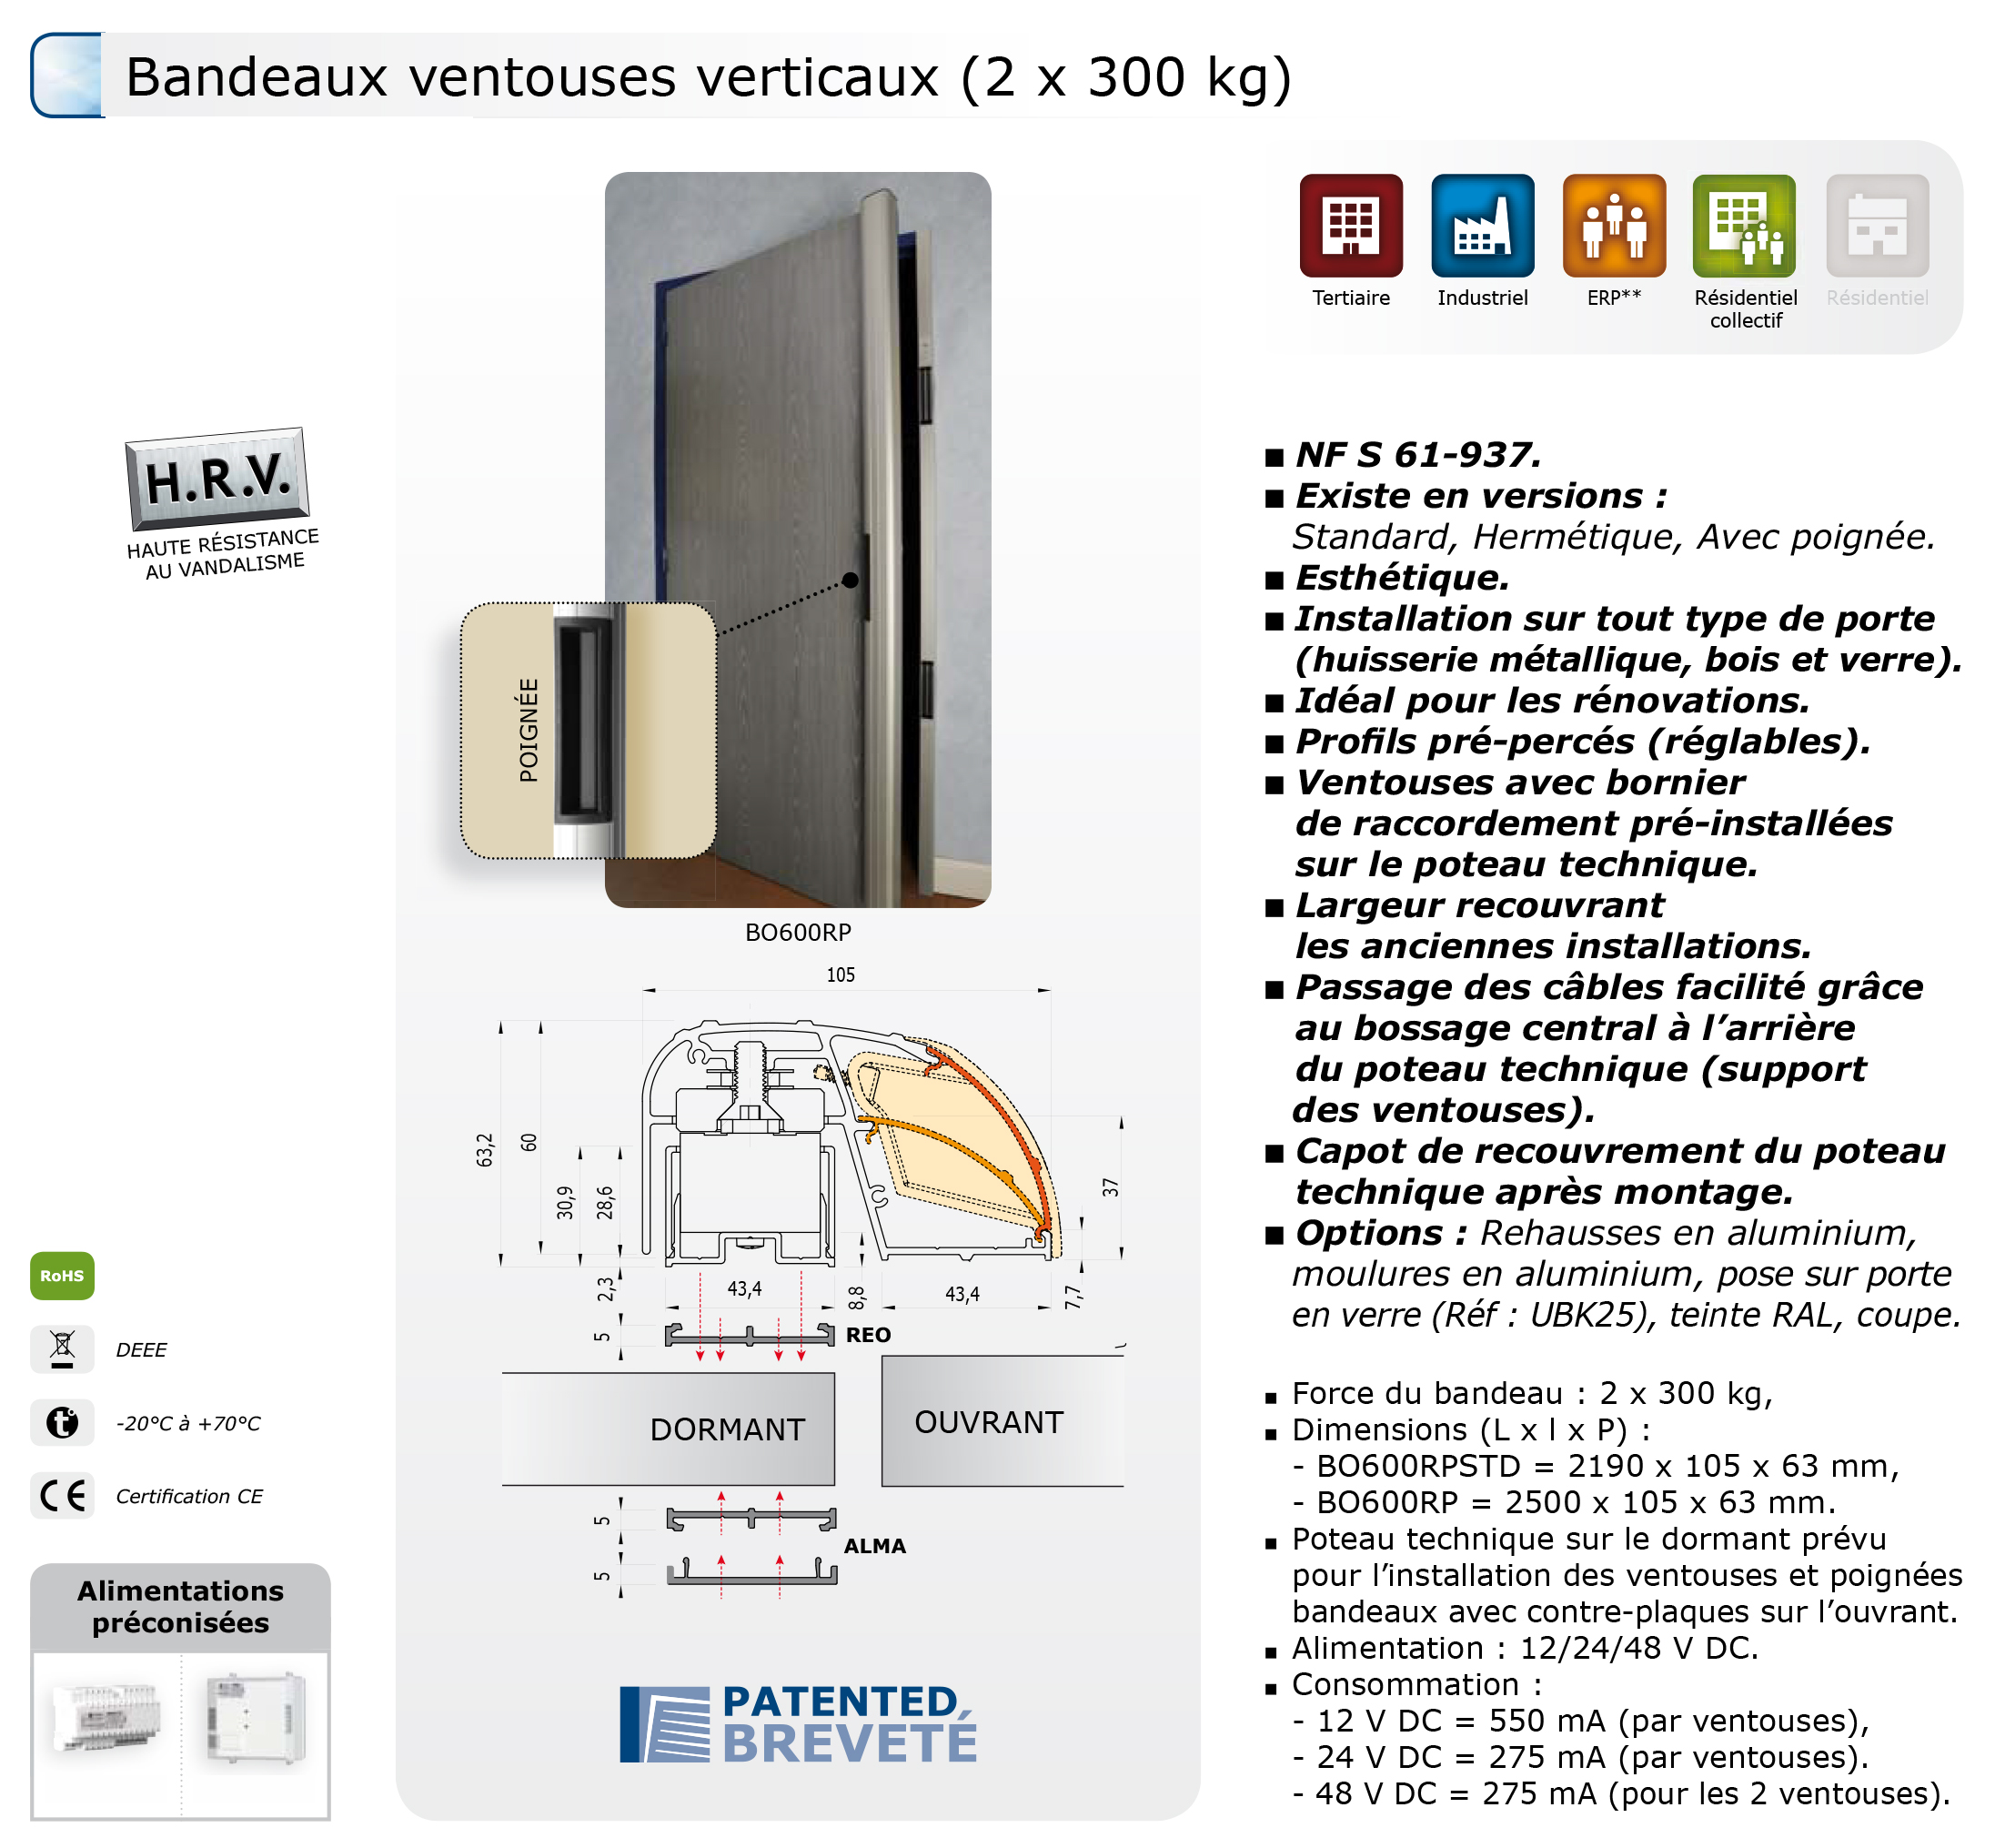 controleAccess_bandeau-ventouse-vertical